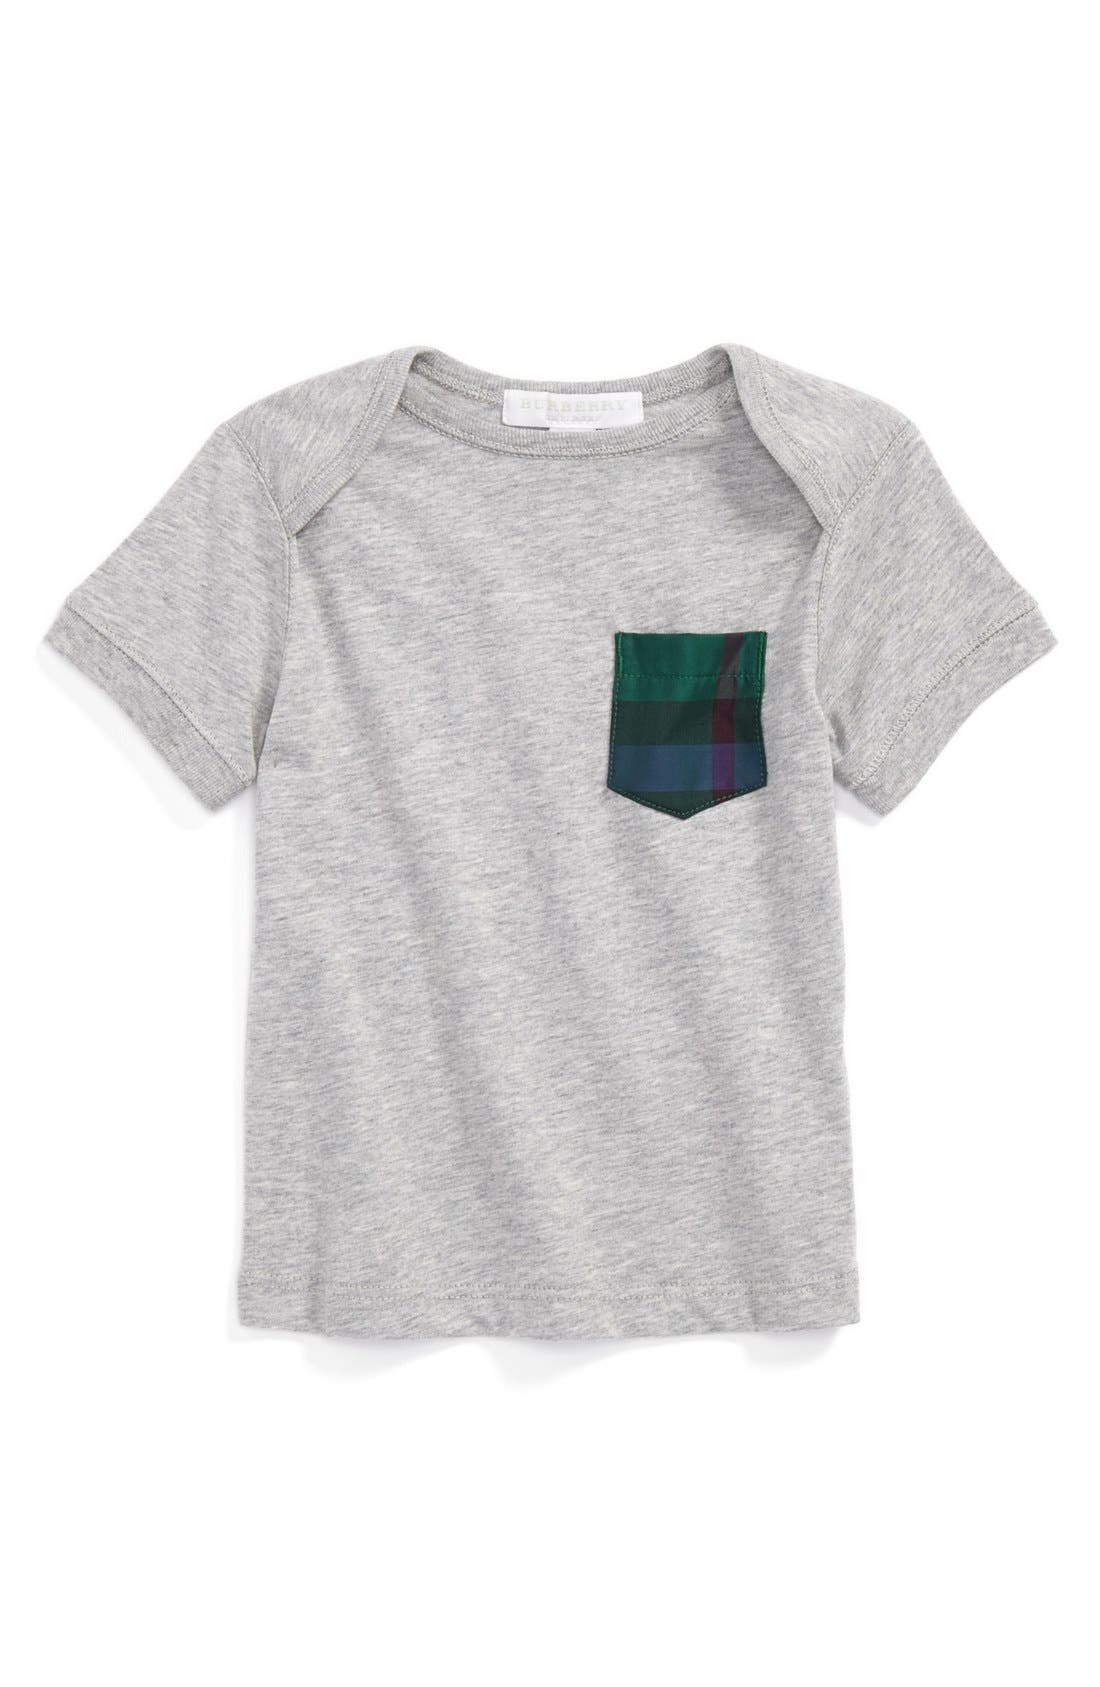 Alternate Image 1 Selected - Burberry 'Callum' T-Shirt (Baby Boys)